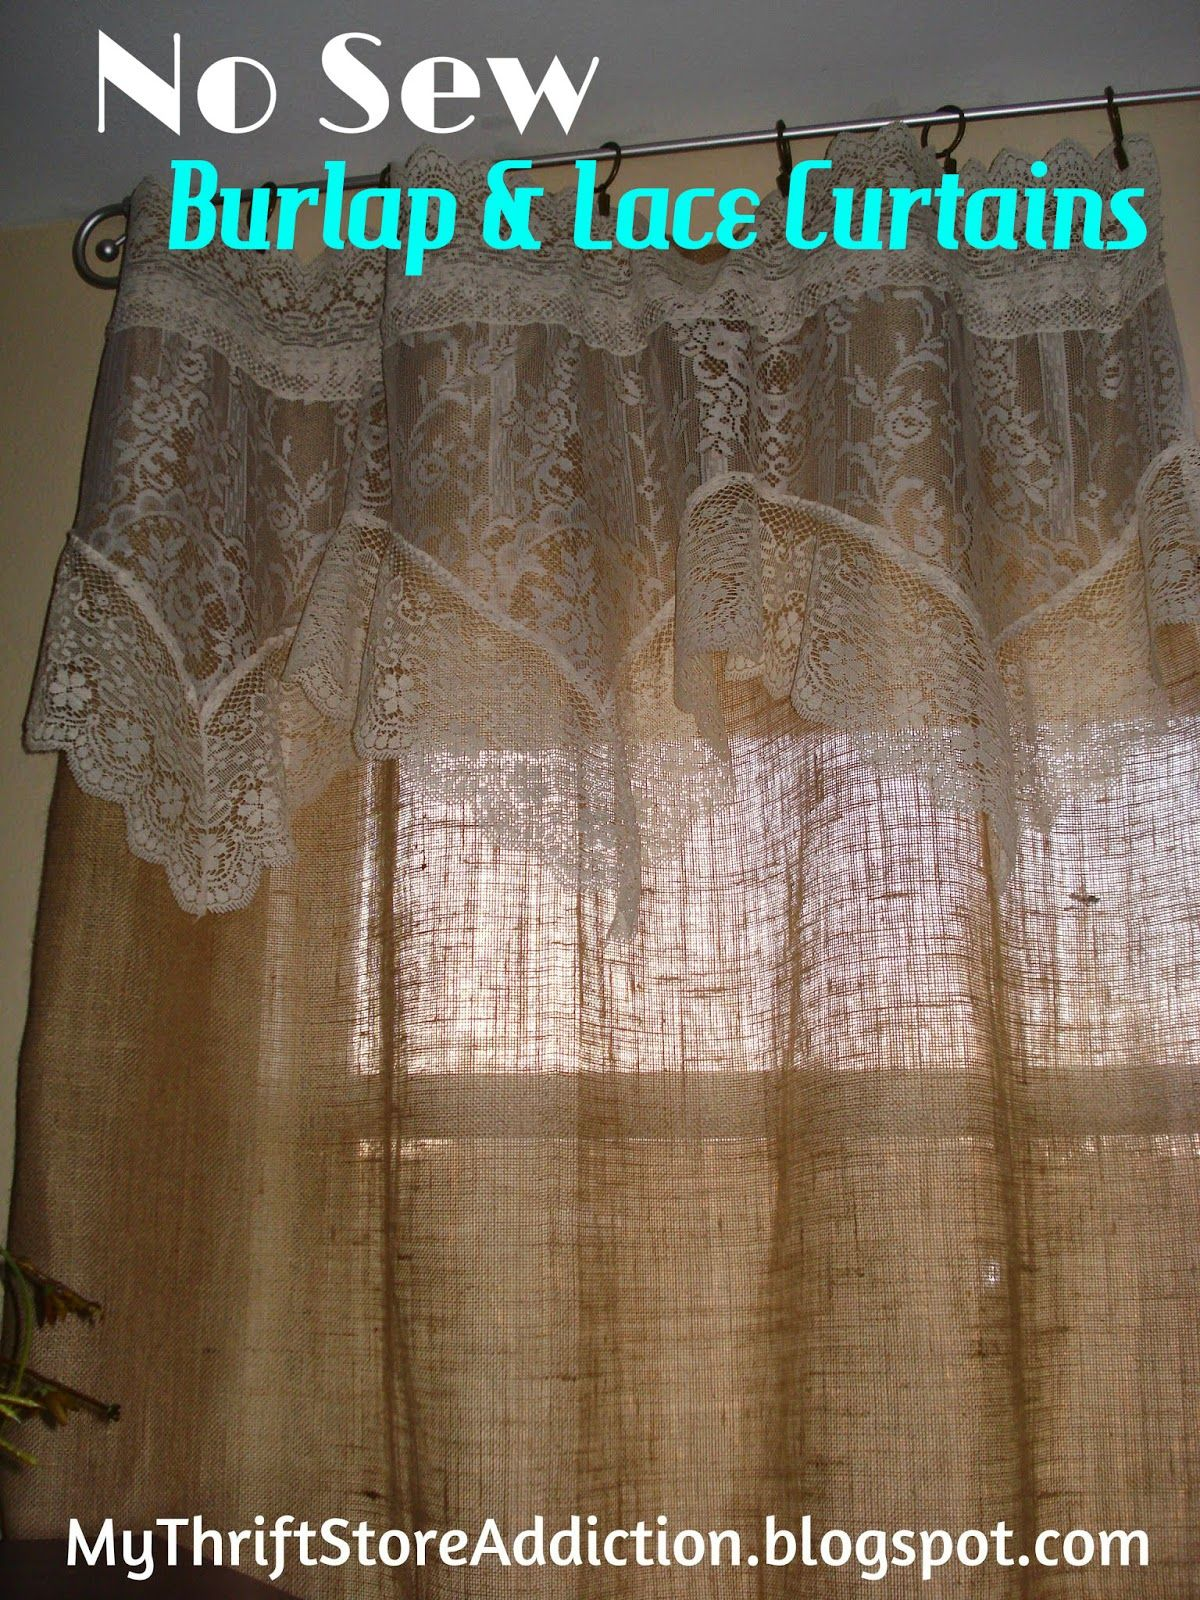 Refresh Your Home No Sew Burlap and Lace Curtains! | Gardinen ...